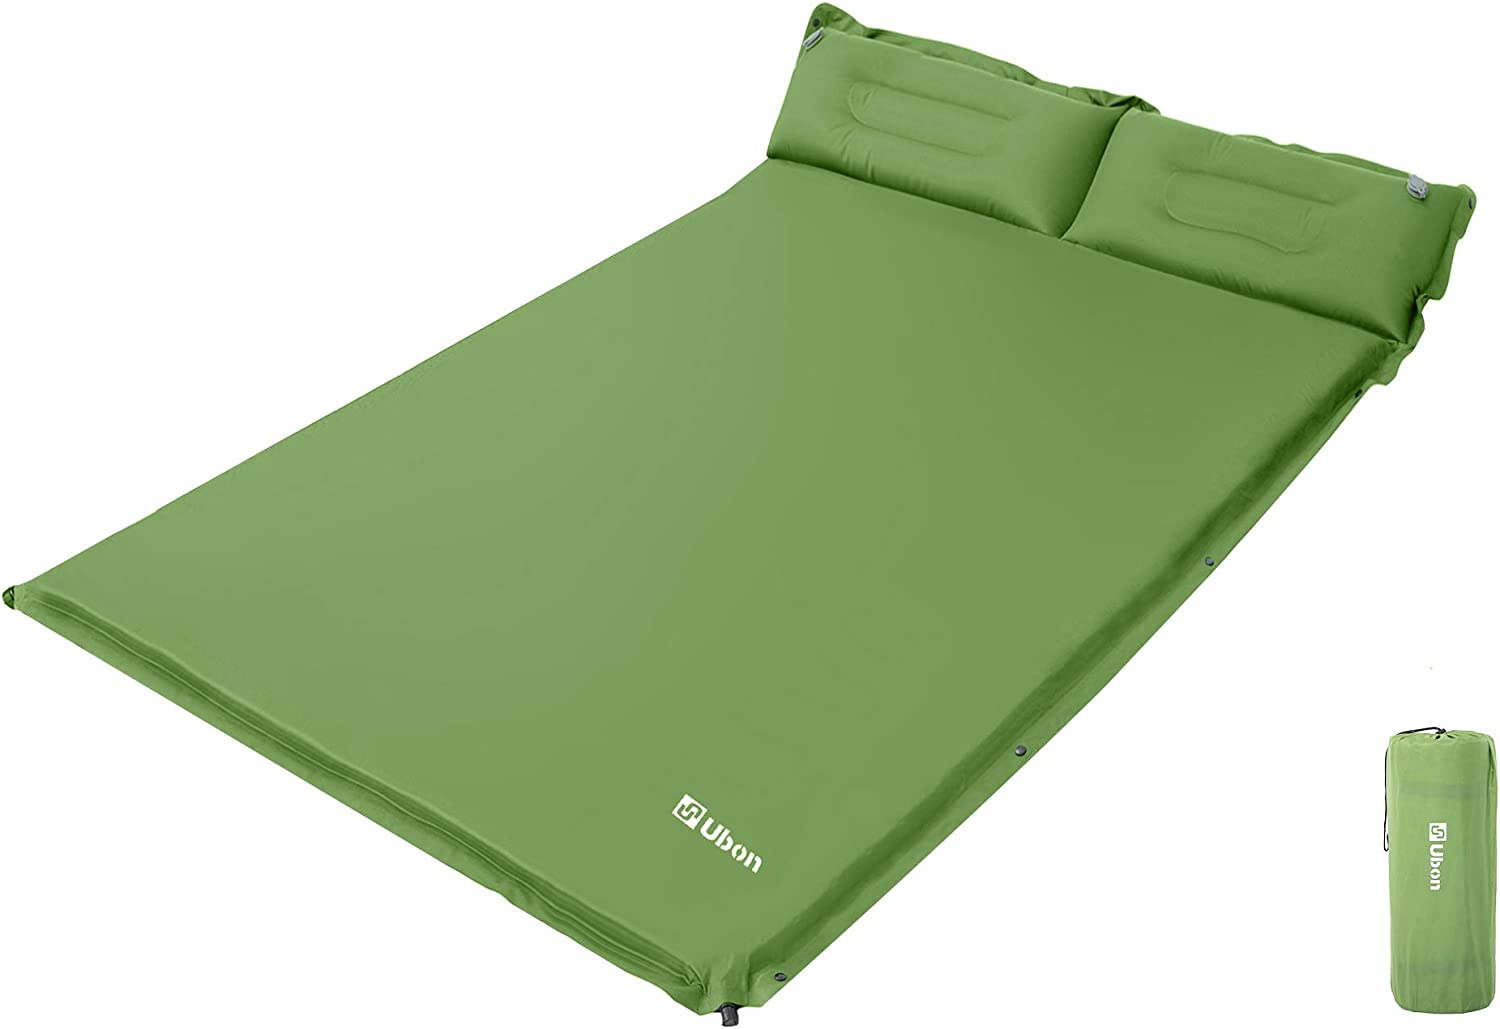 Ubon Double Self-Inflating Sleeping Pad Sleeping Mat for Camping with Pillows Attached Camp Sleep Pad for Backpacking Hiking Air Mattress Lightweight Inflatable & Compact